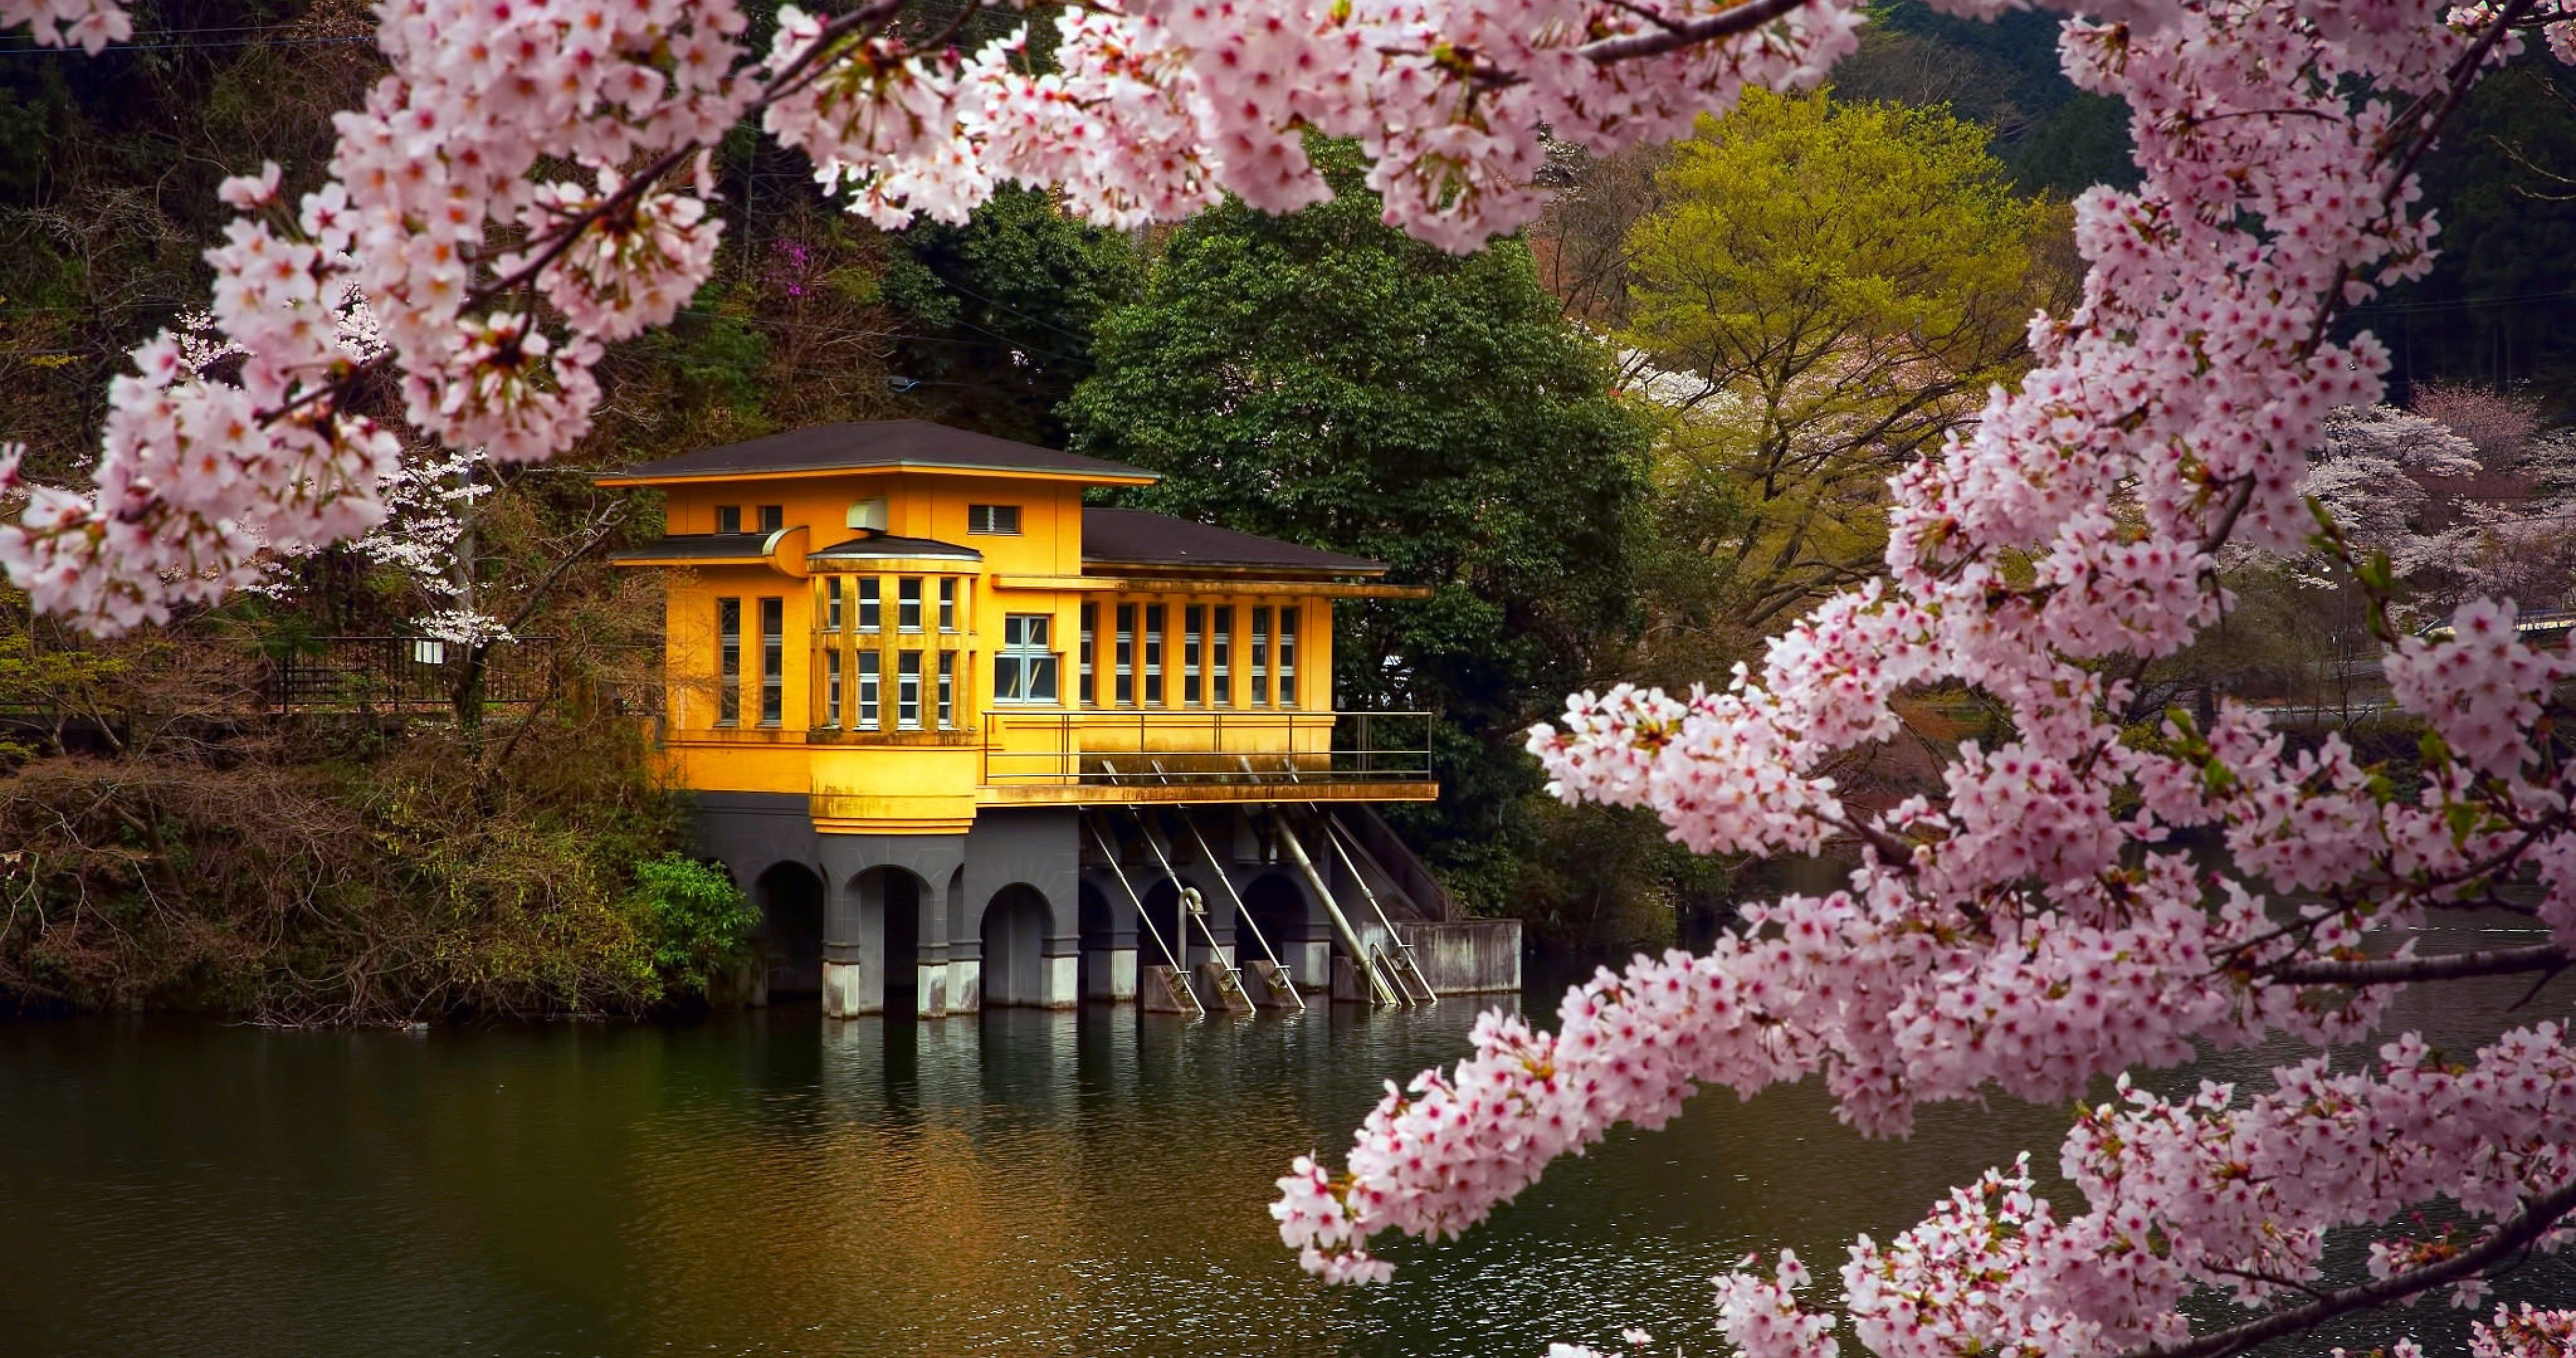 Japan Honshu Island 56 4k Ultra Hd Wallpaper Spring Desktop